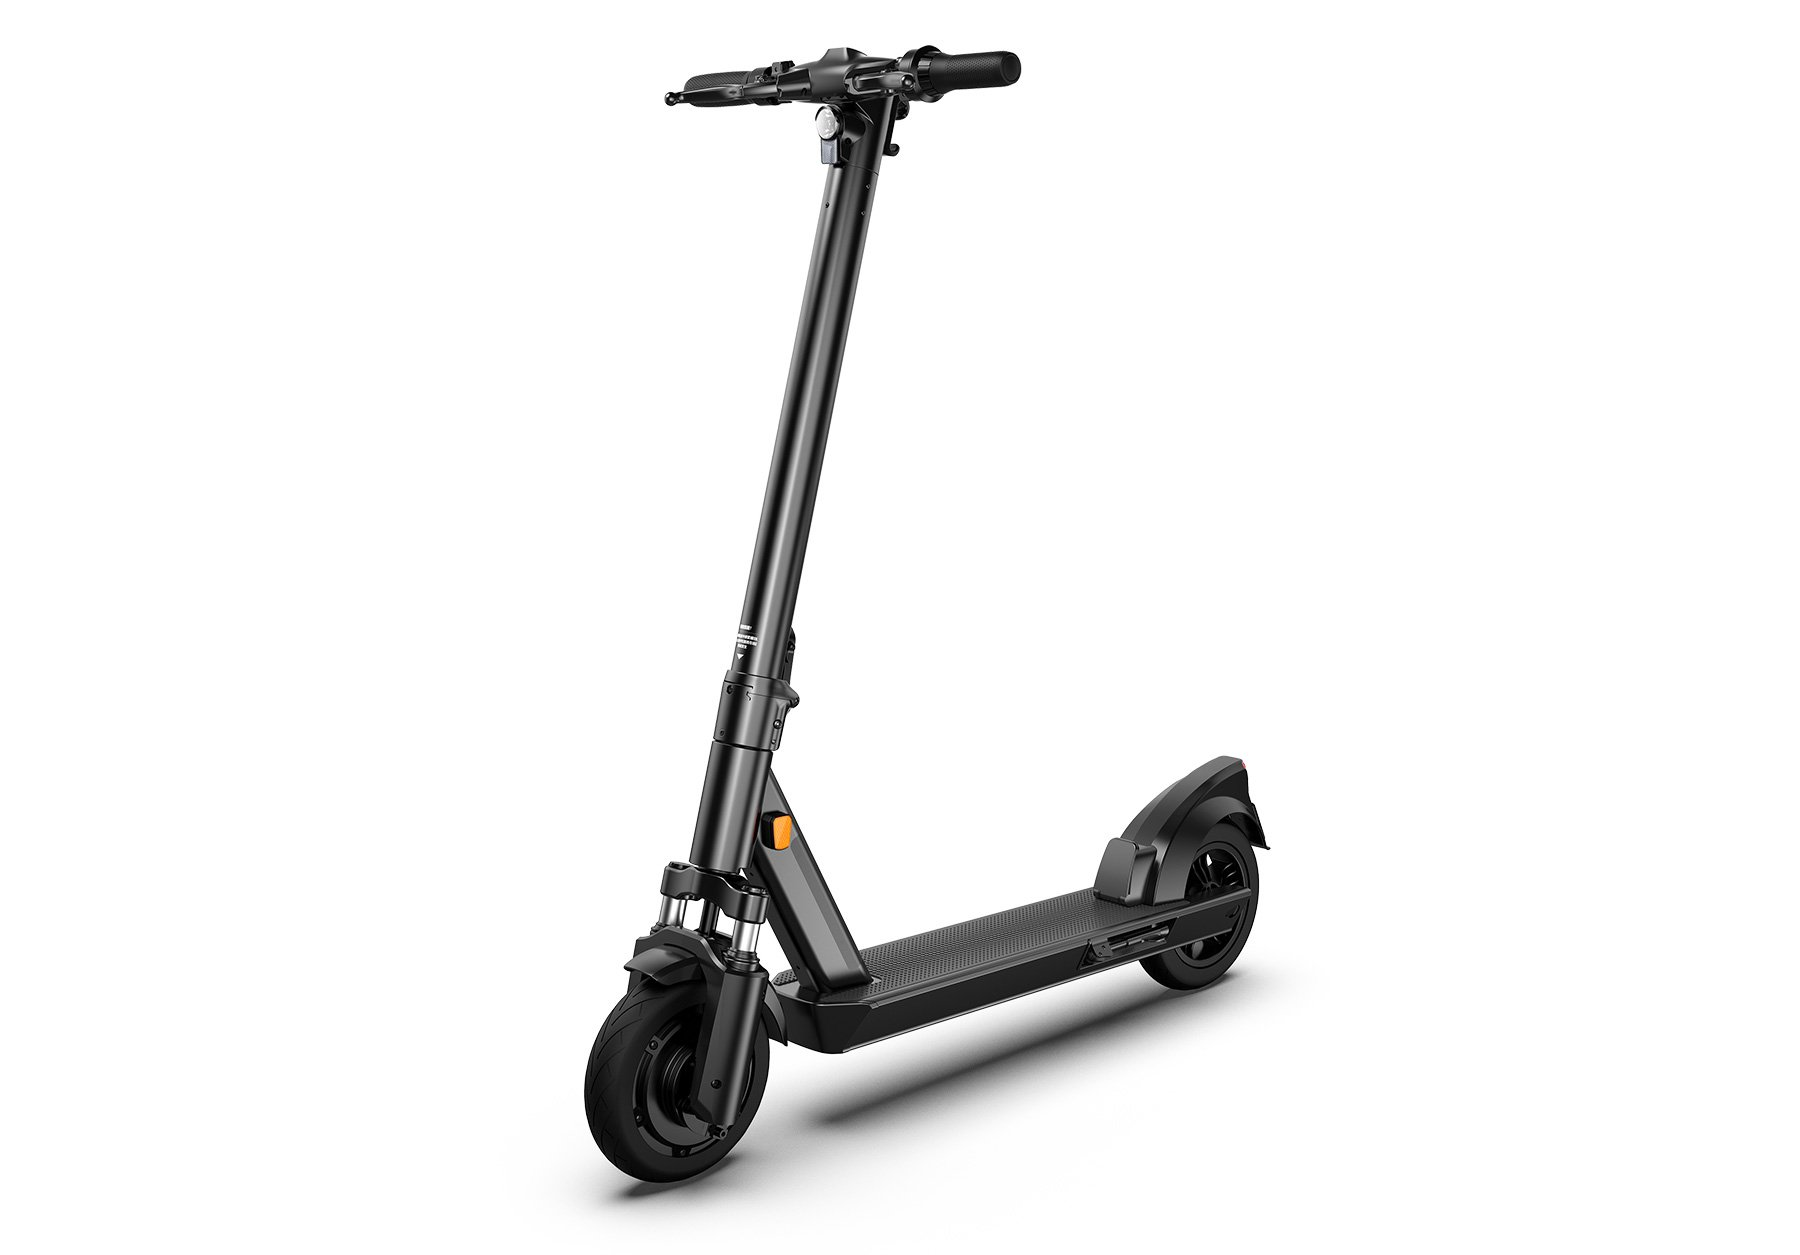 Okai-electric-scooter-es200-side-view_1800x